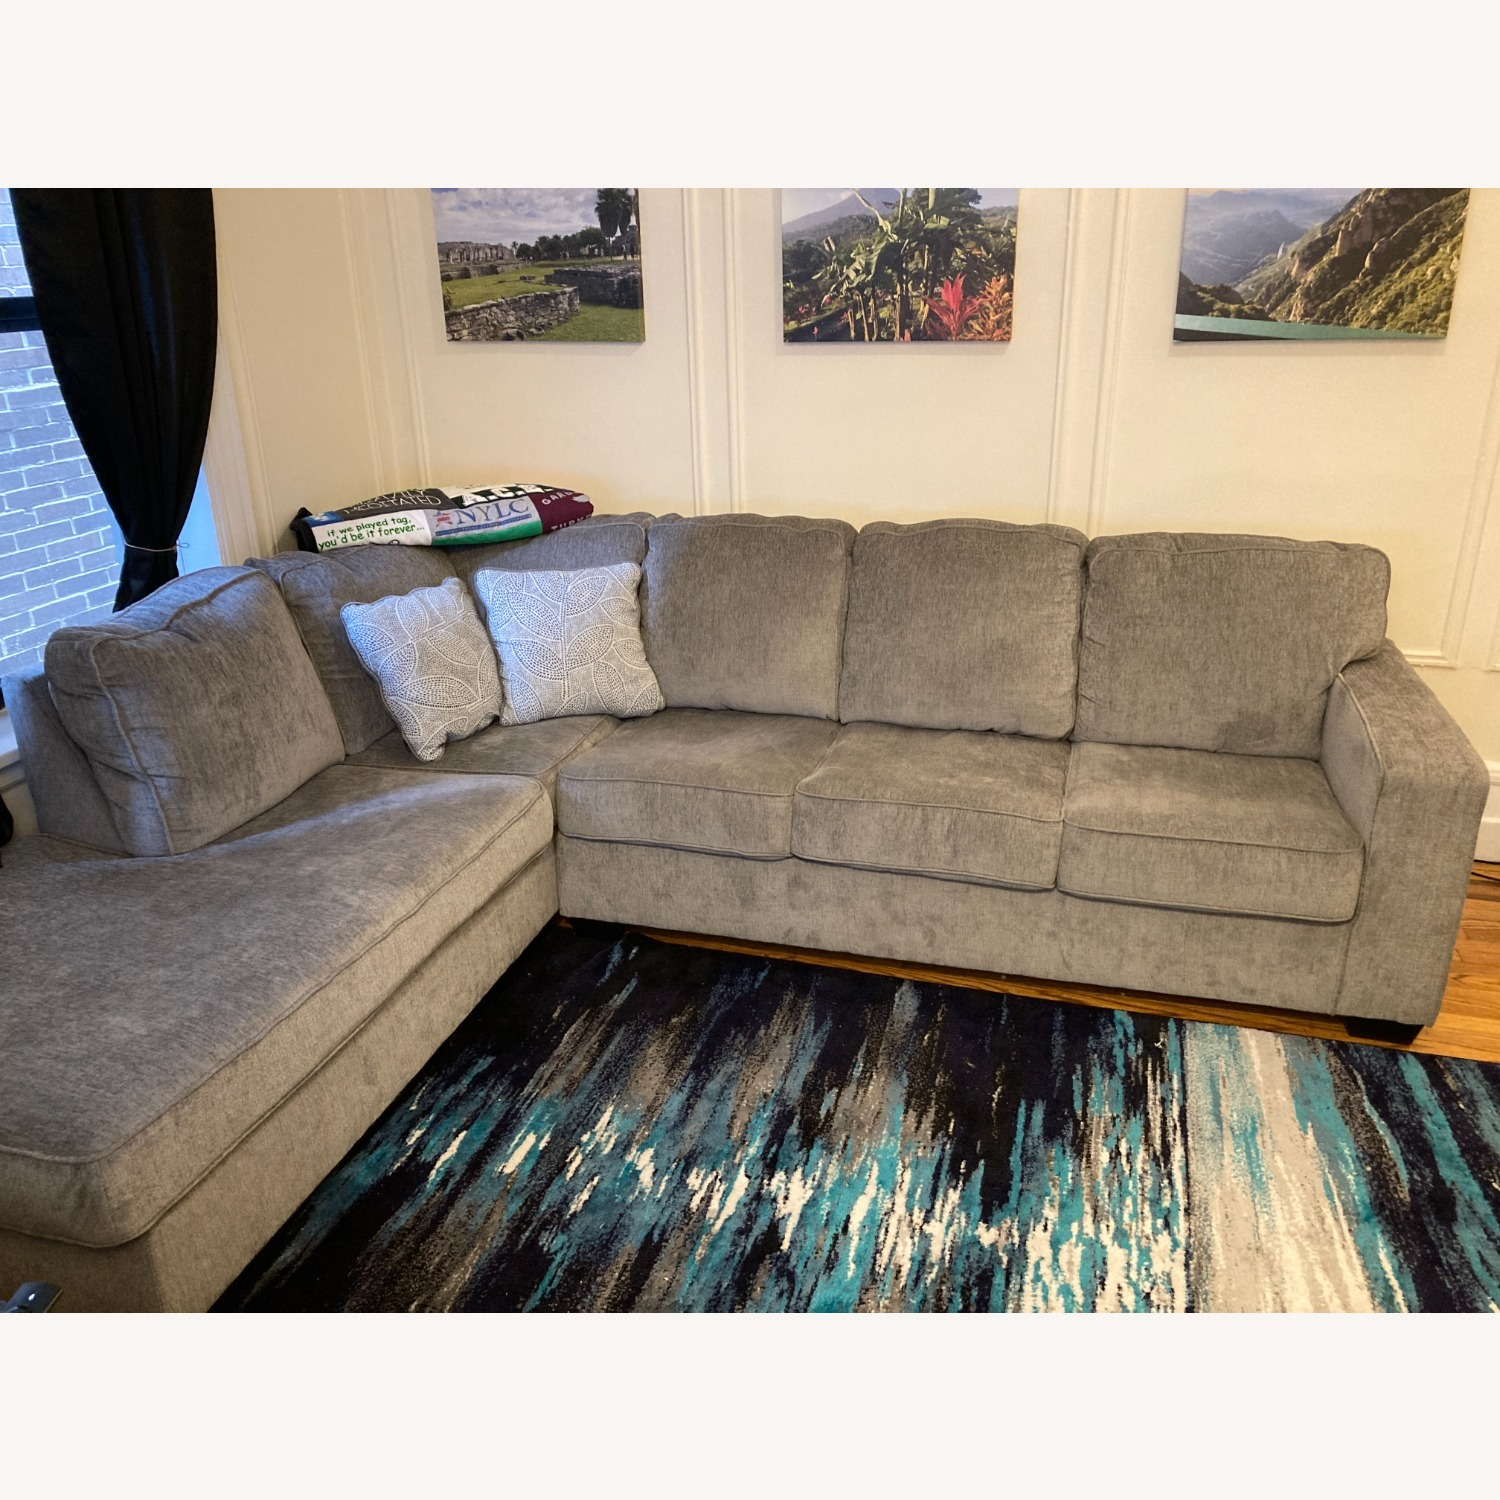 Ashley Furniture Altari 2-Piece Sectional with Chaise - image-1